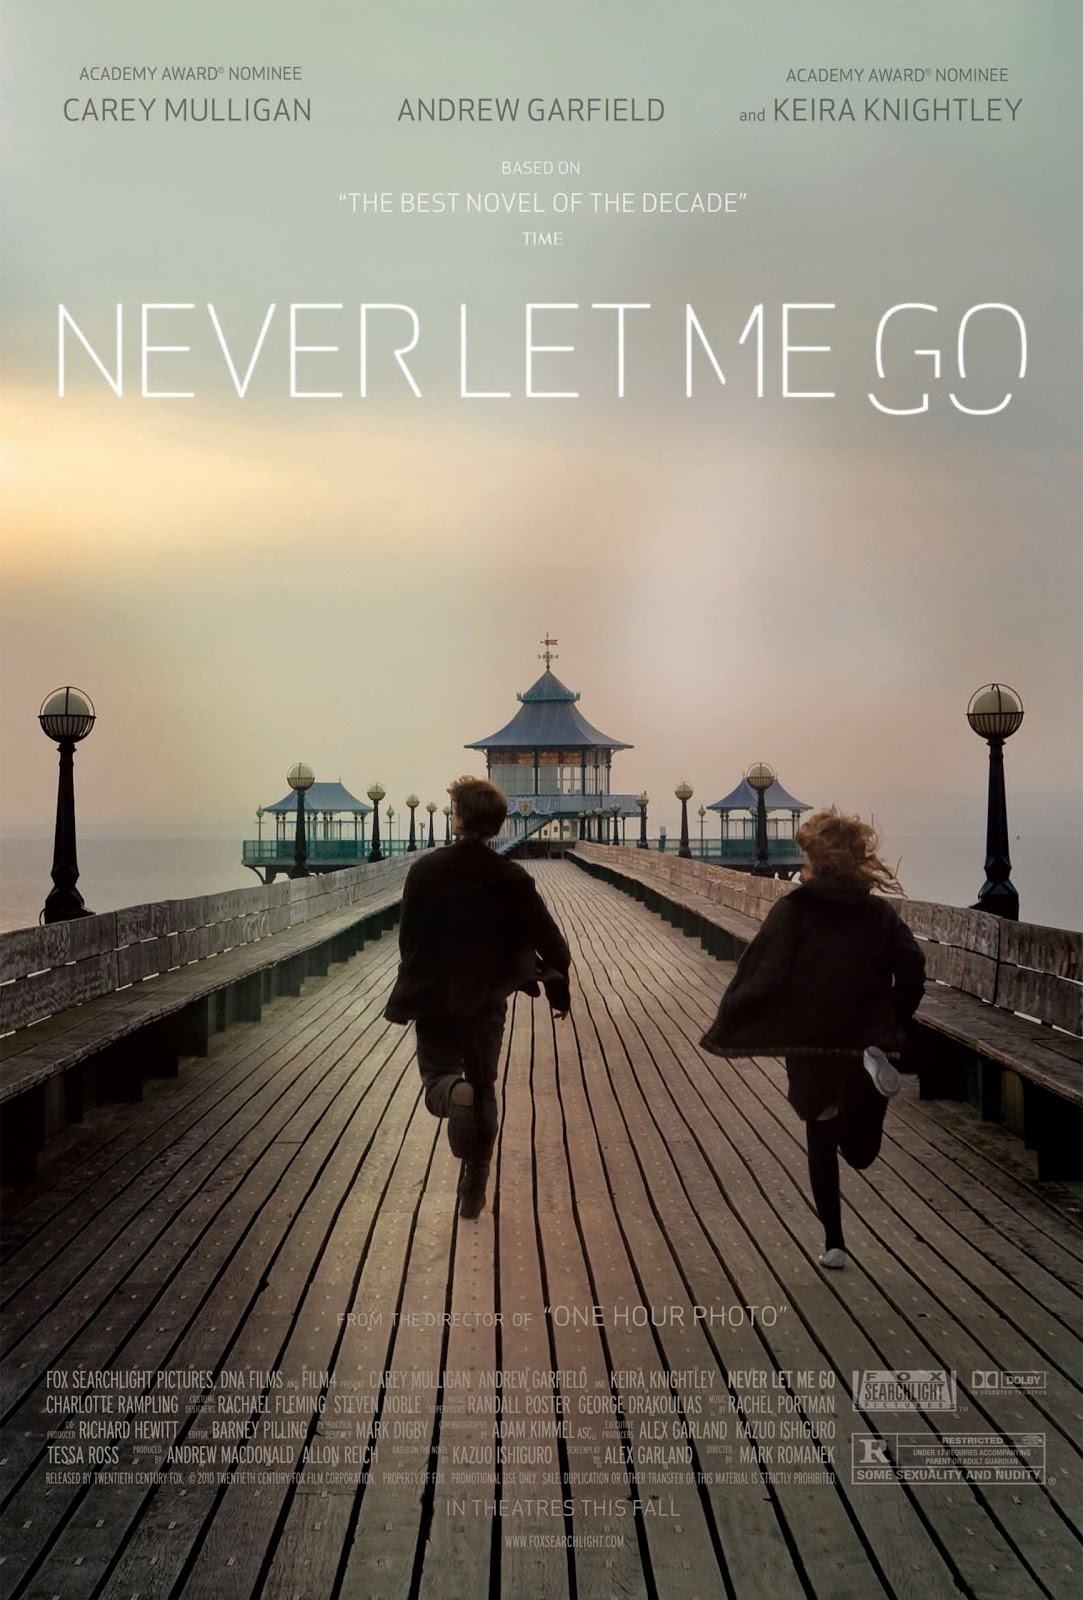 http://1.bp.blogspot.com/_lweymjmz4GY/TE53v4WxatI/AAAAAAAAQcI/Z9aT4SW_XMQ/s1600/never_let_me_go_movie_poster.jpg